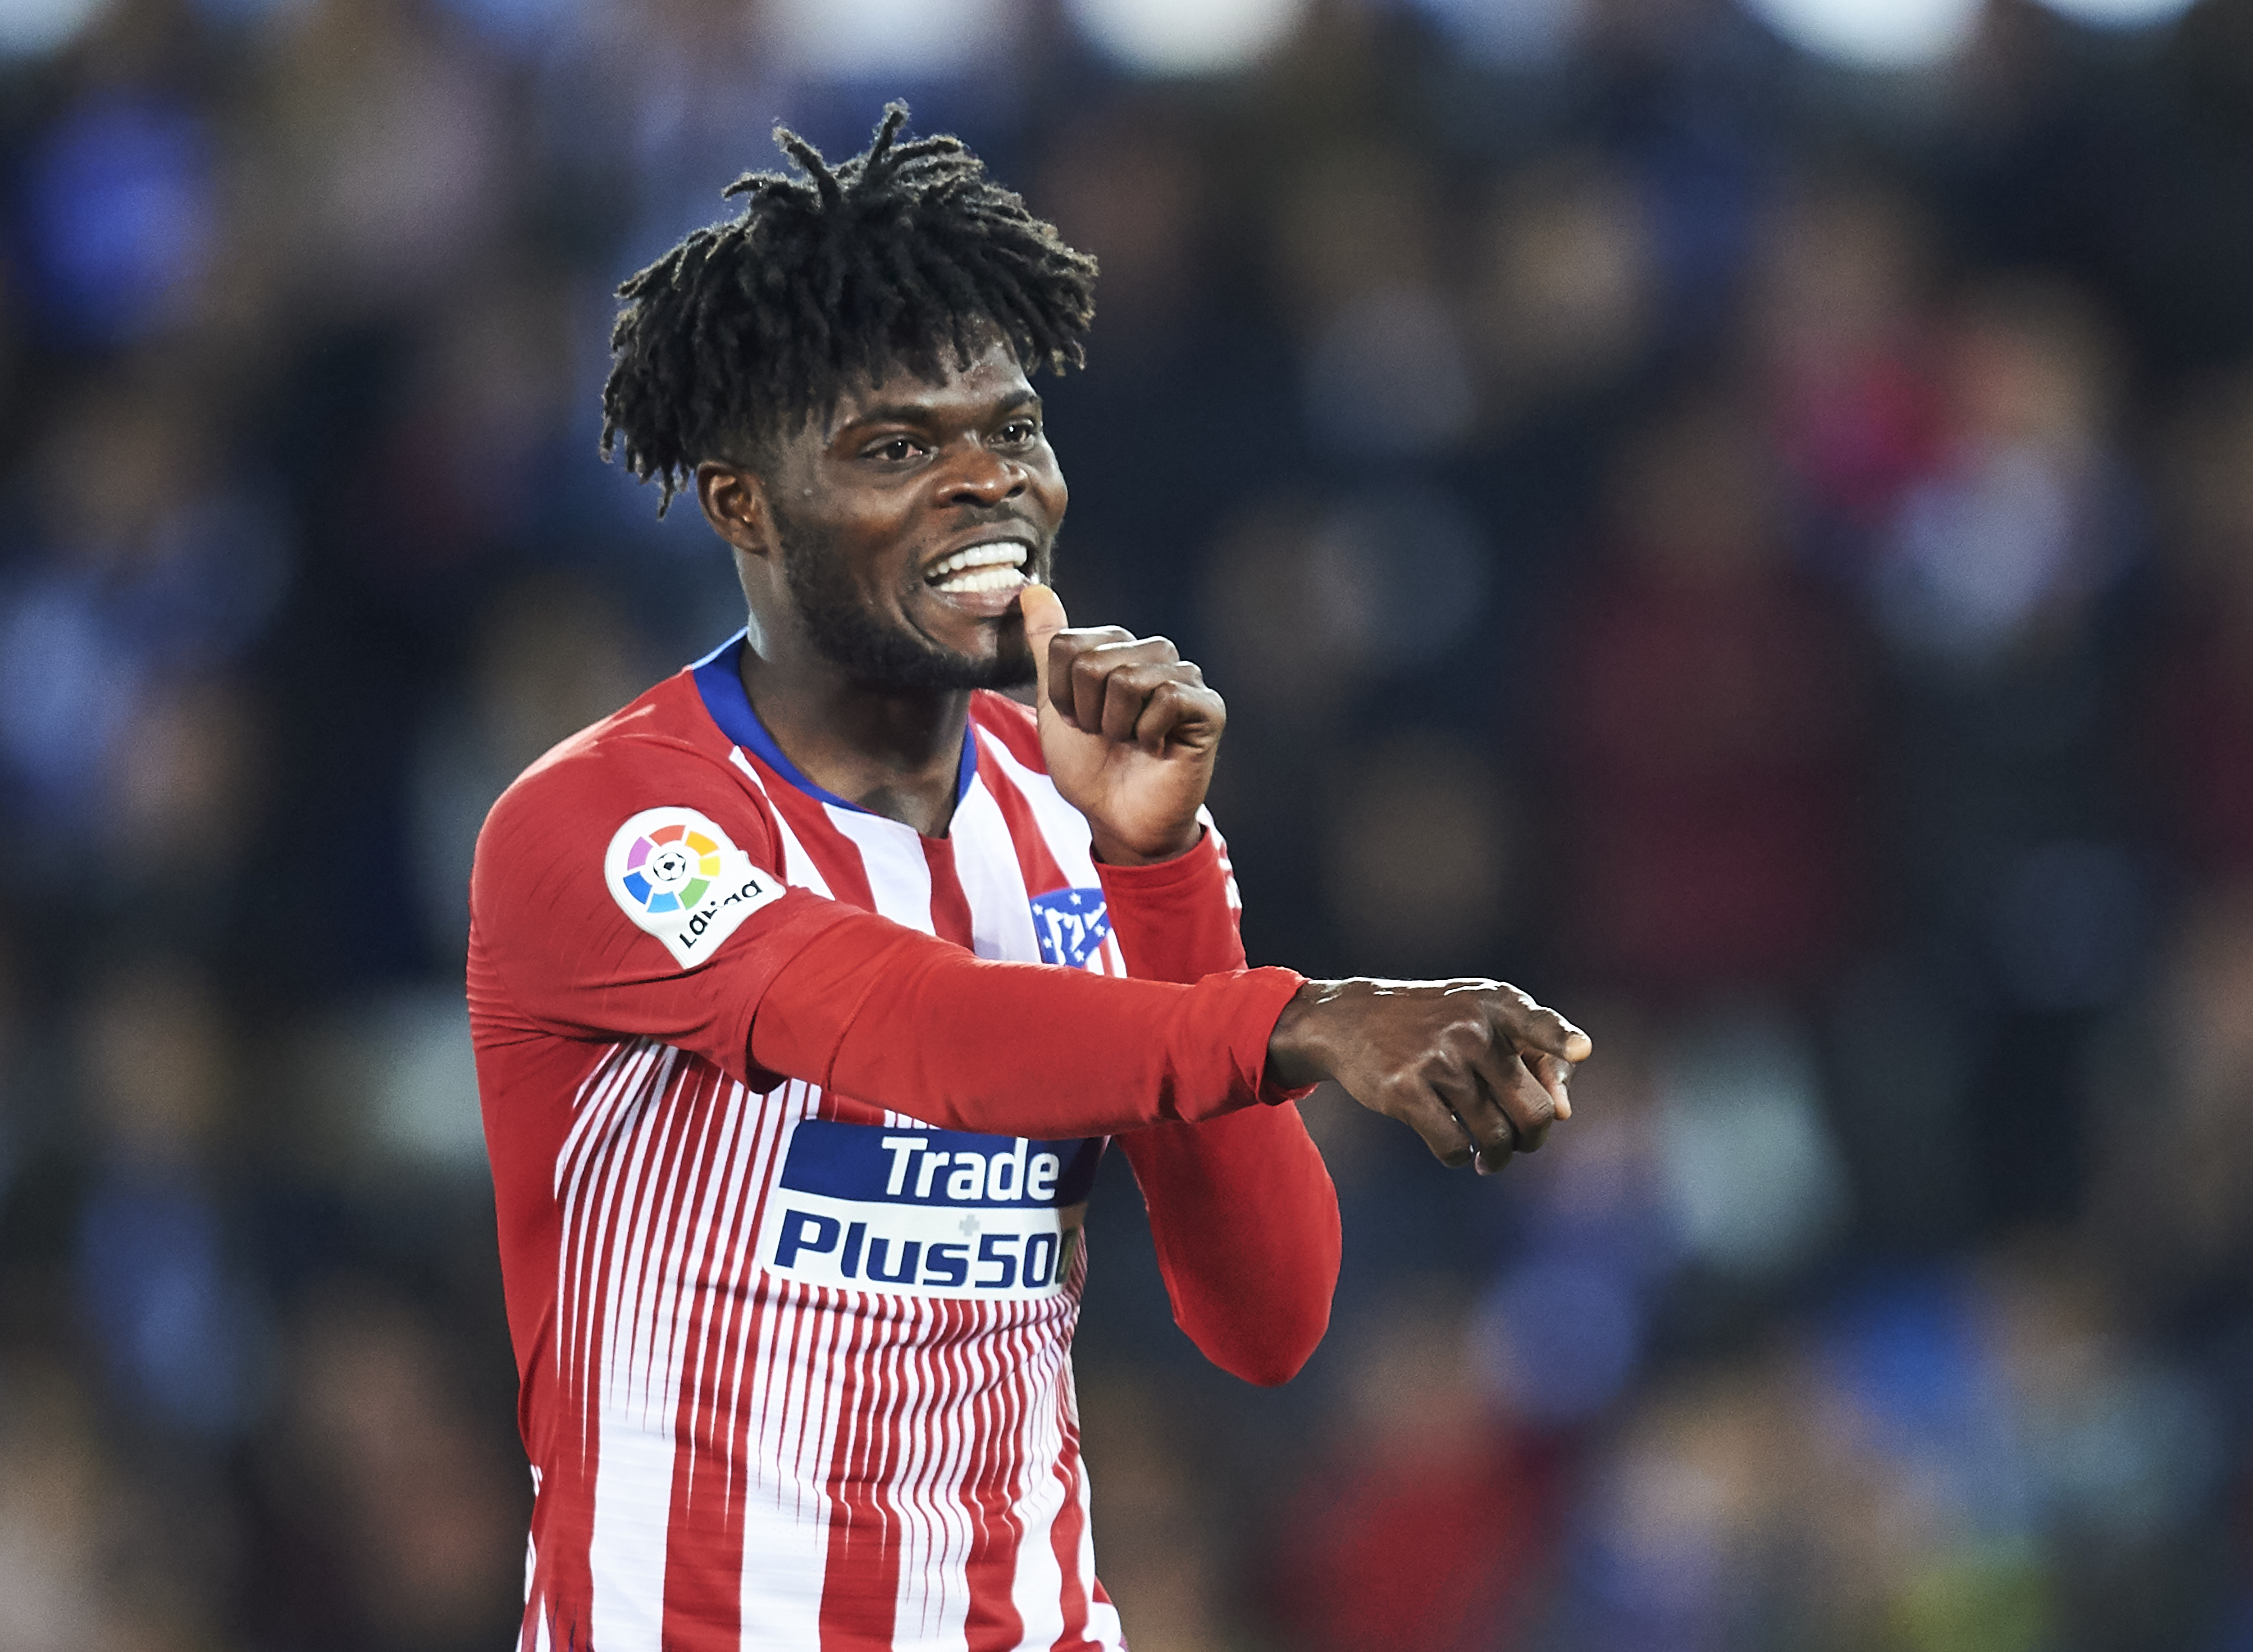 A man in demand! Thomas Partey is wanted by manny clubs.